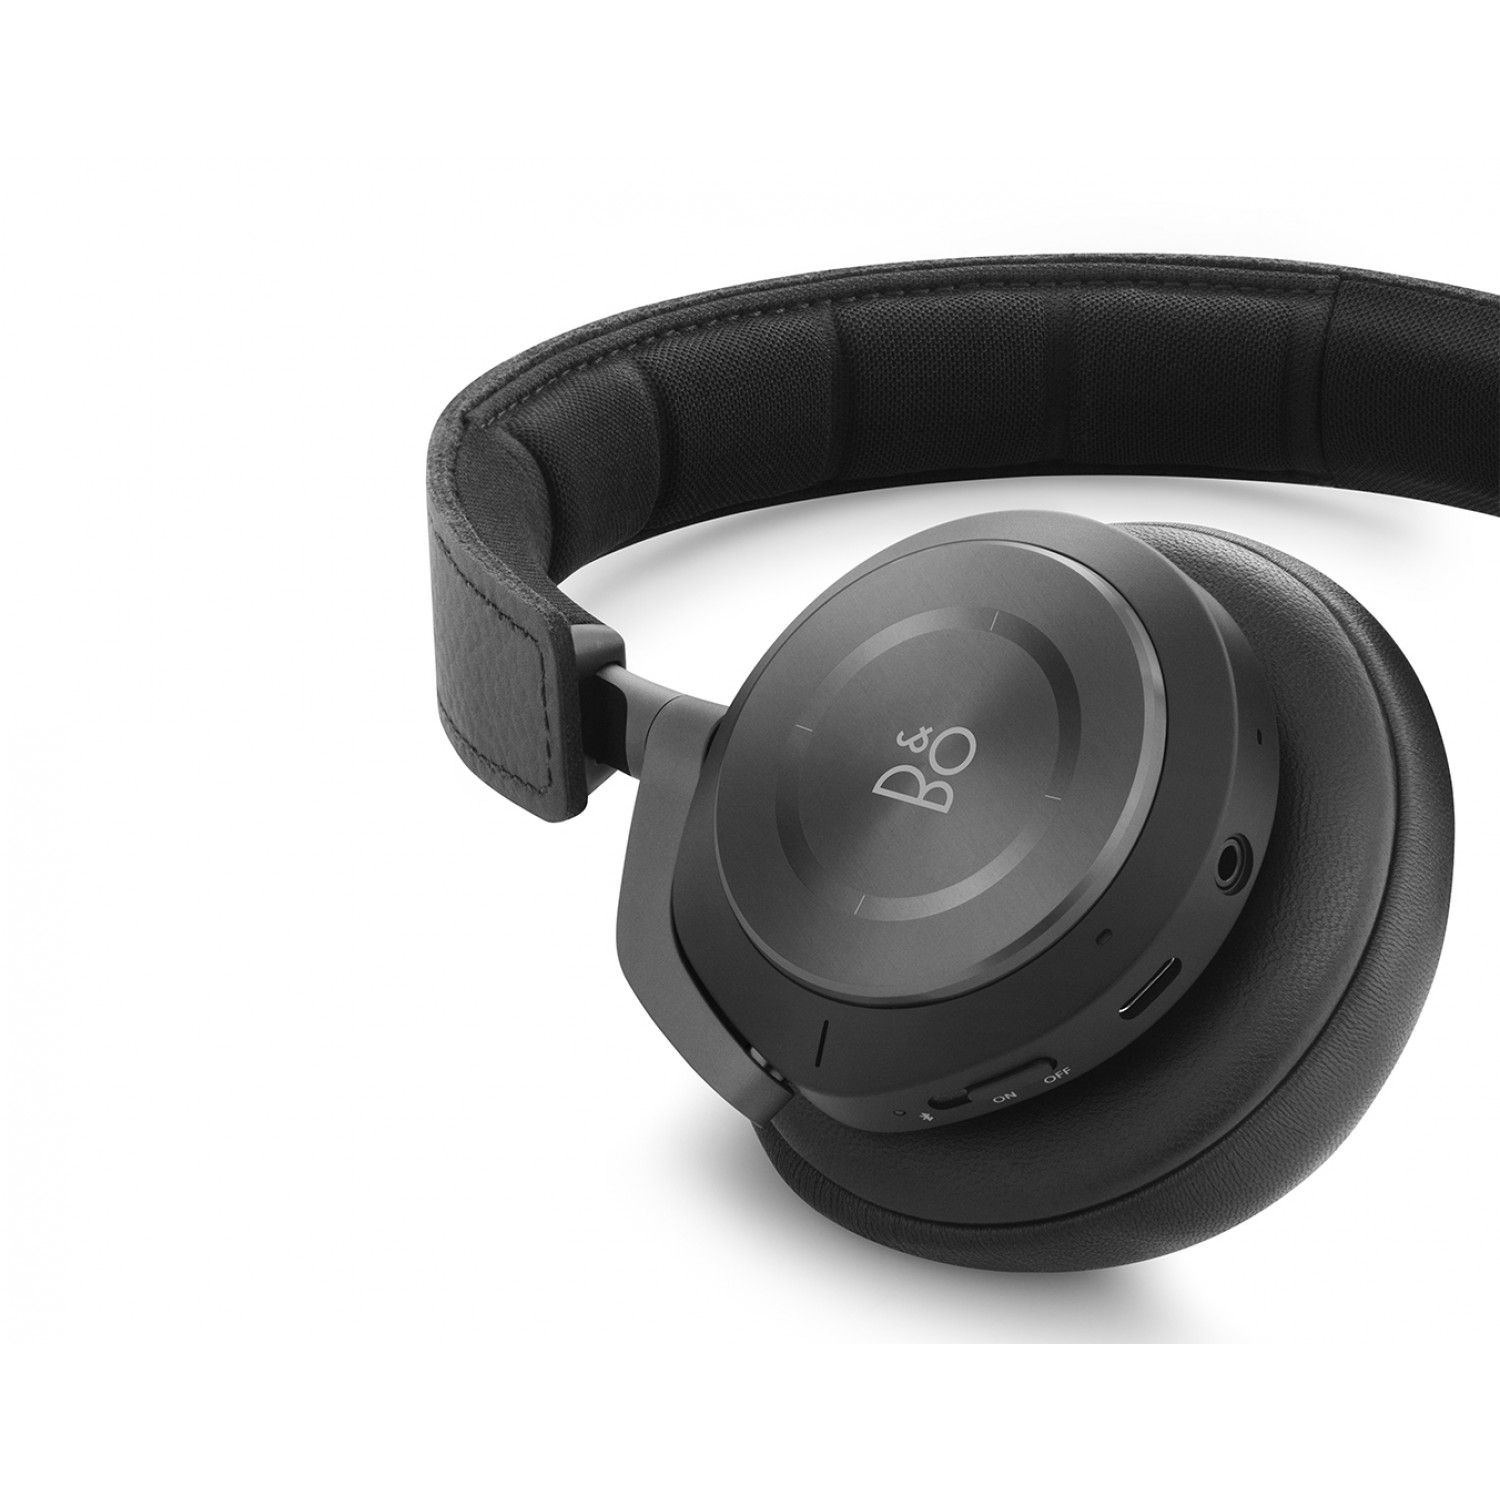 7cff5e8207f Bang & Olufsen Beoplay H9i - Wireless, Noise Cancelling Headphones -  Exclusive Offer